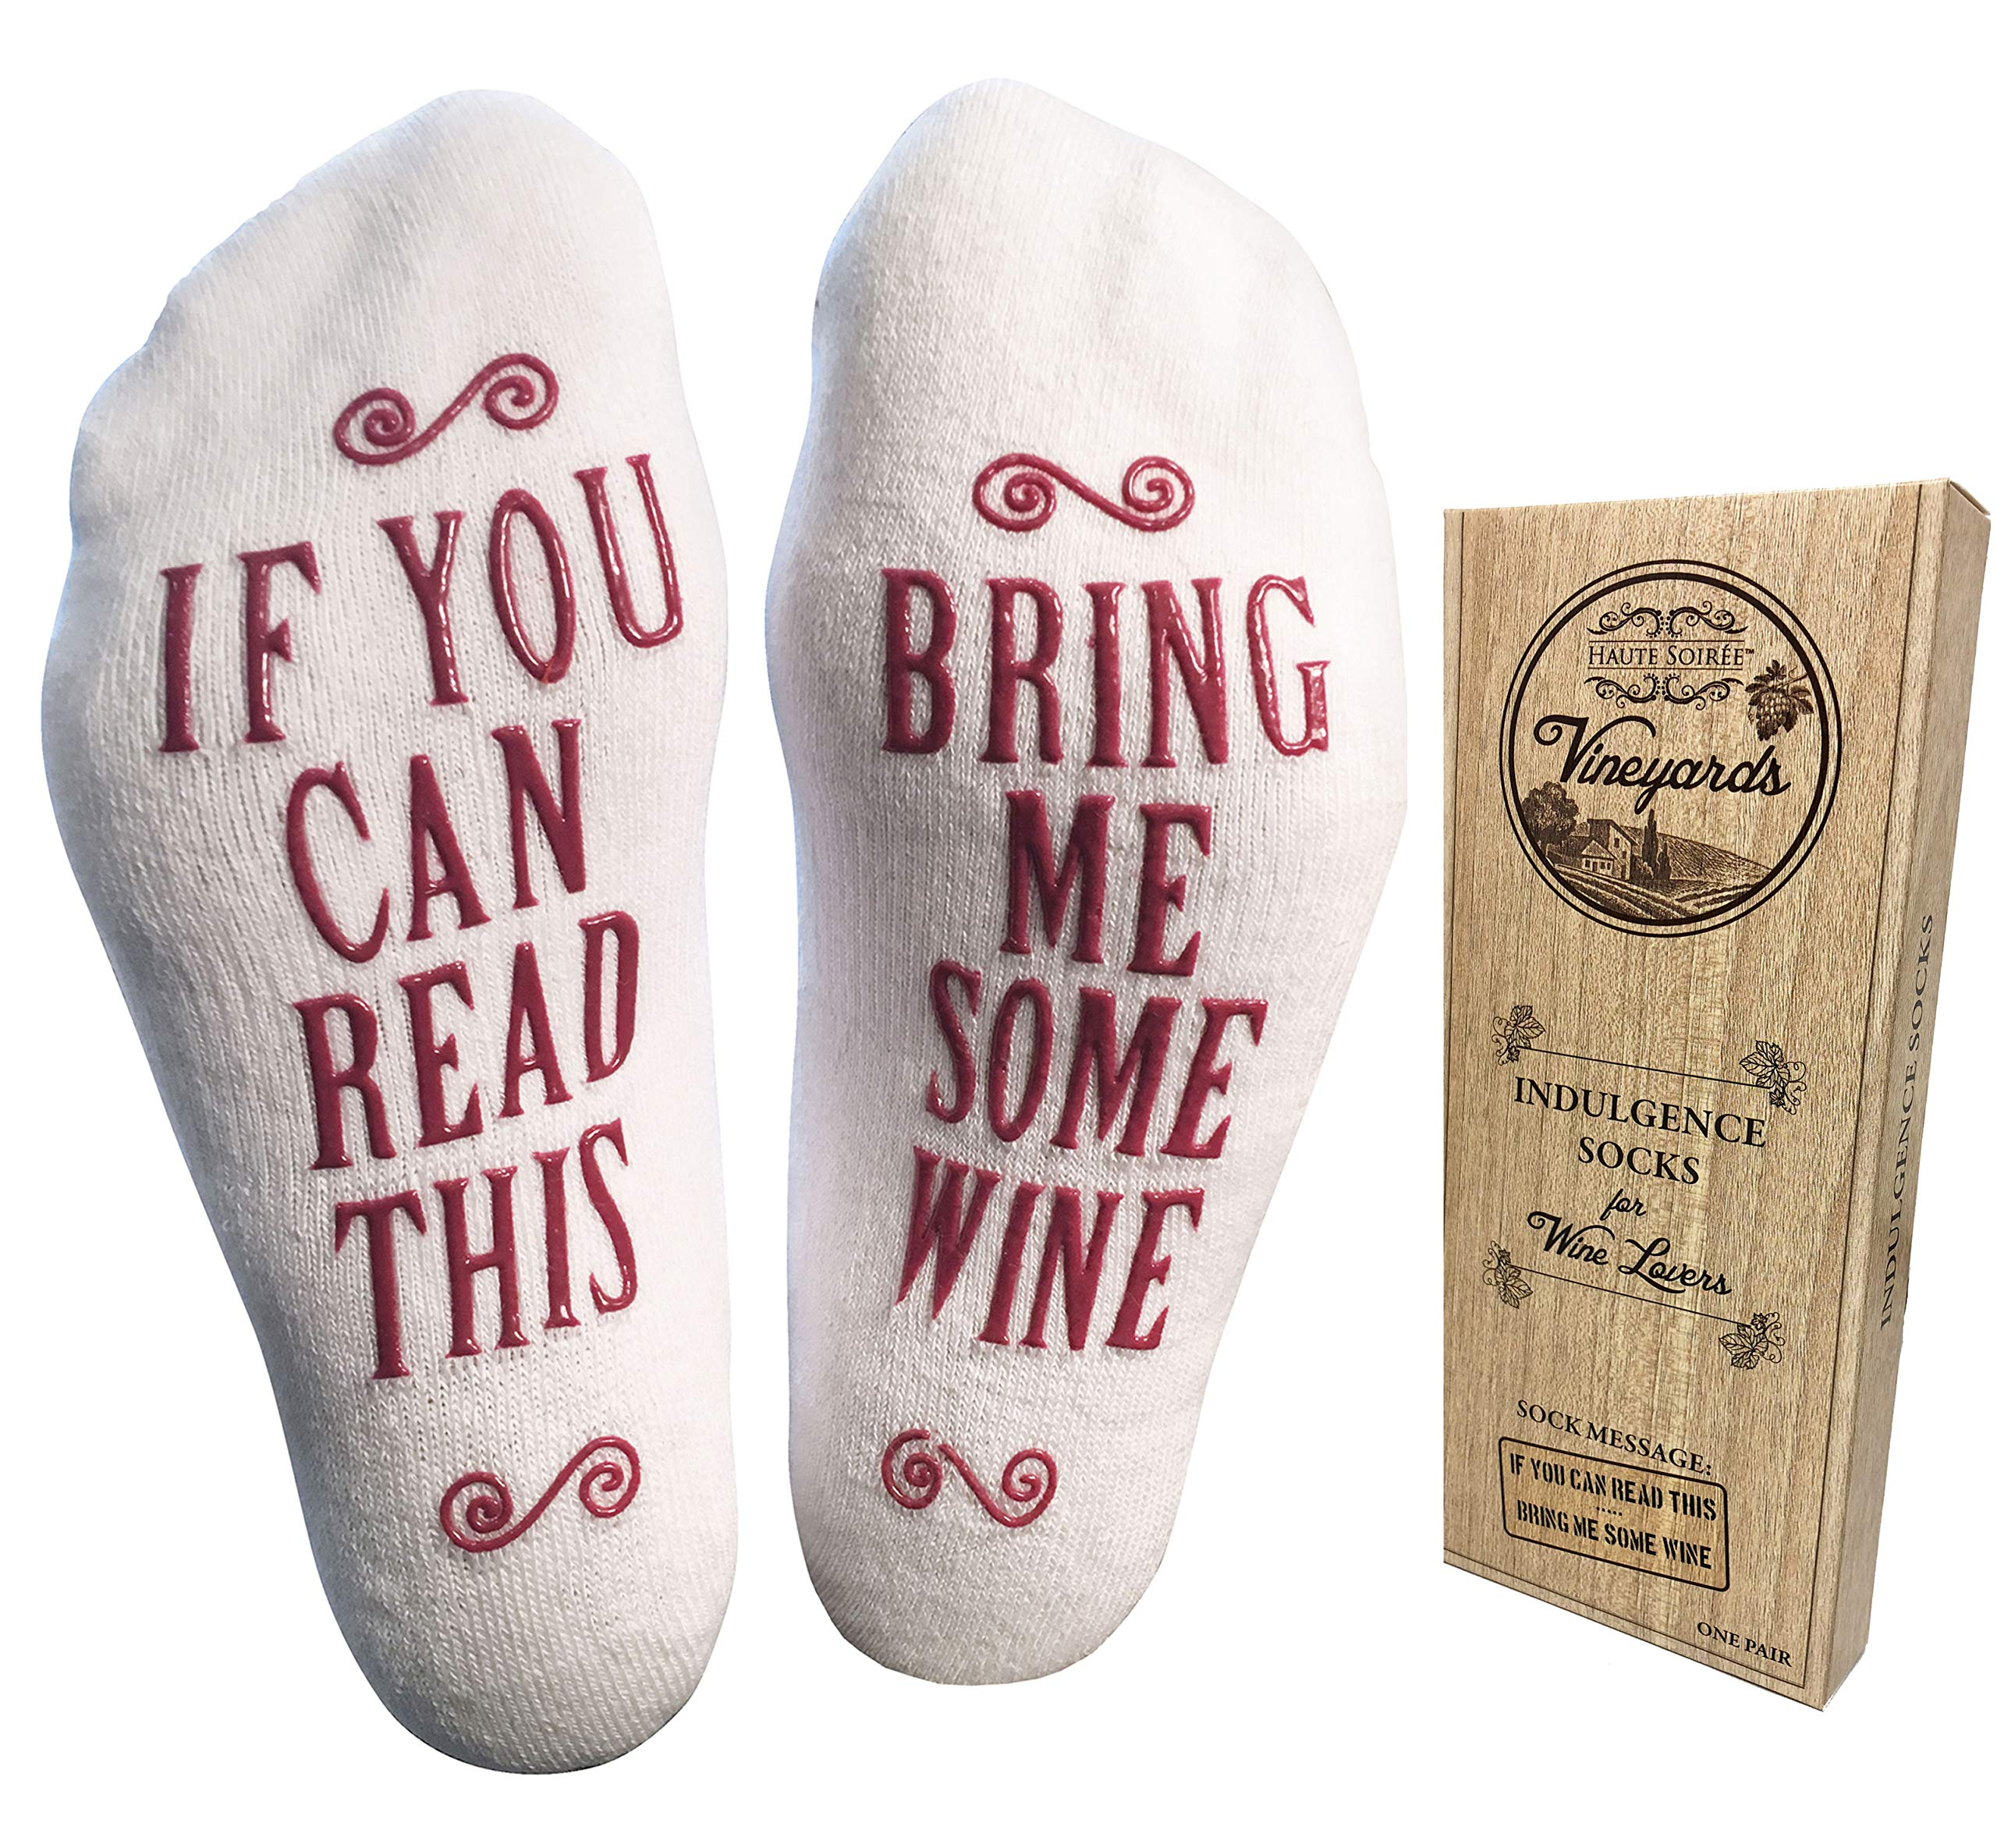 Luxury Combed Cotton  Bring Me Some Wine  Socks - Perfect Hostess or Housewarming Gift  sc 1 st  Amazon UK & Gifts for Her Under 20 Pounds: Amazon.co.uk